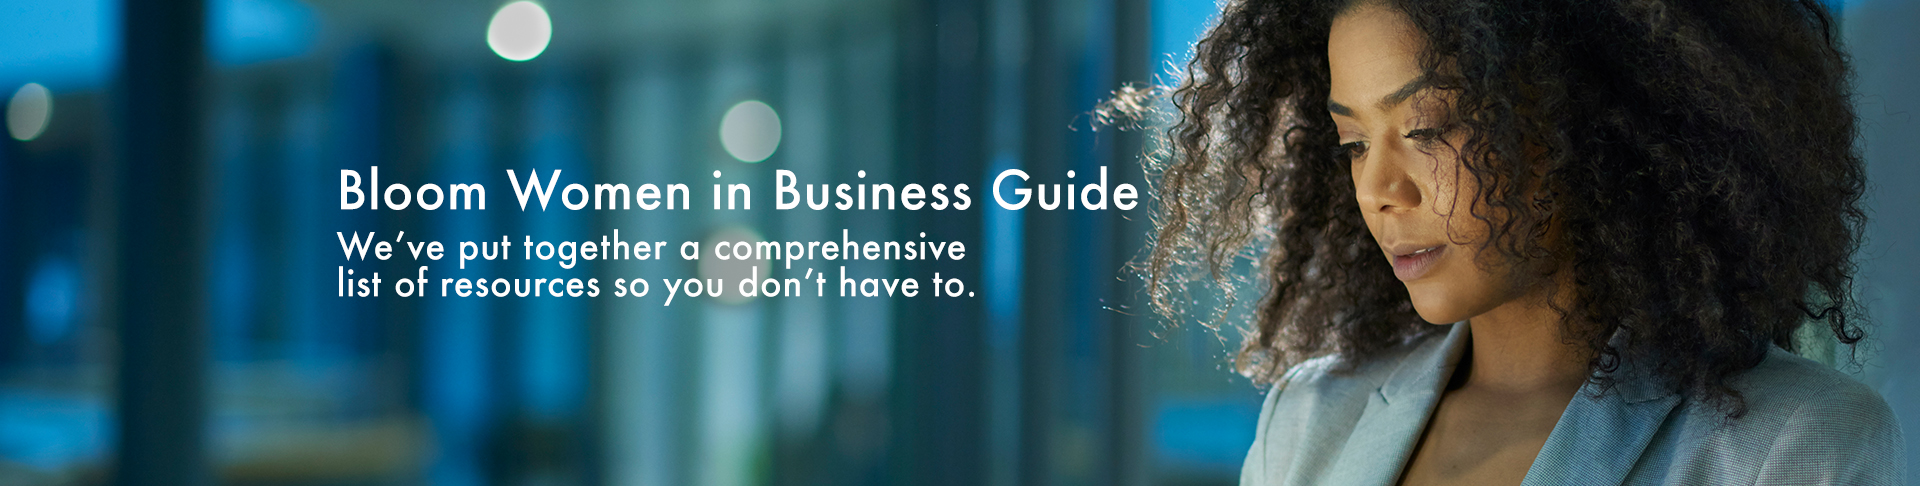 Women in Business Compendium